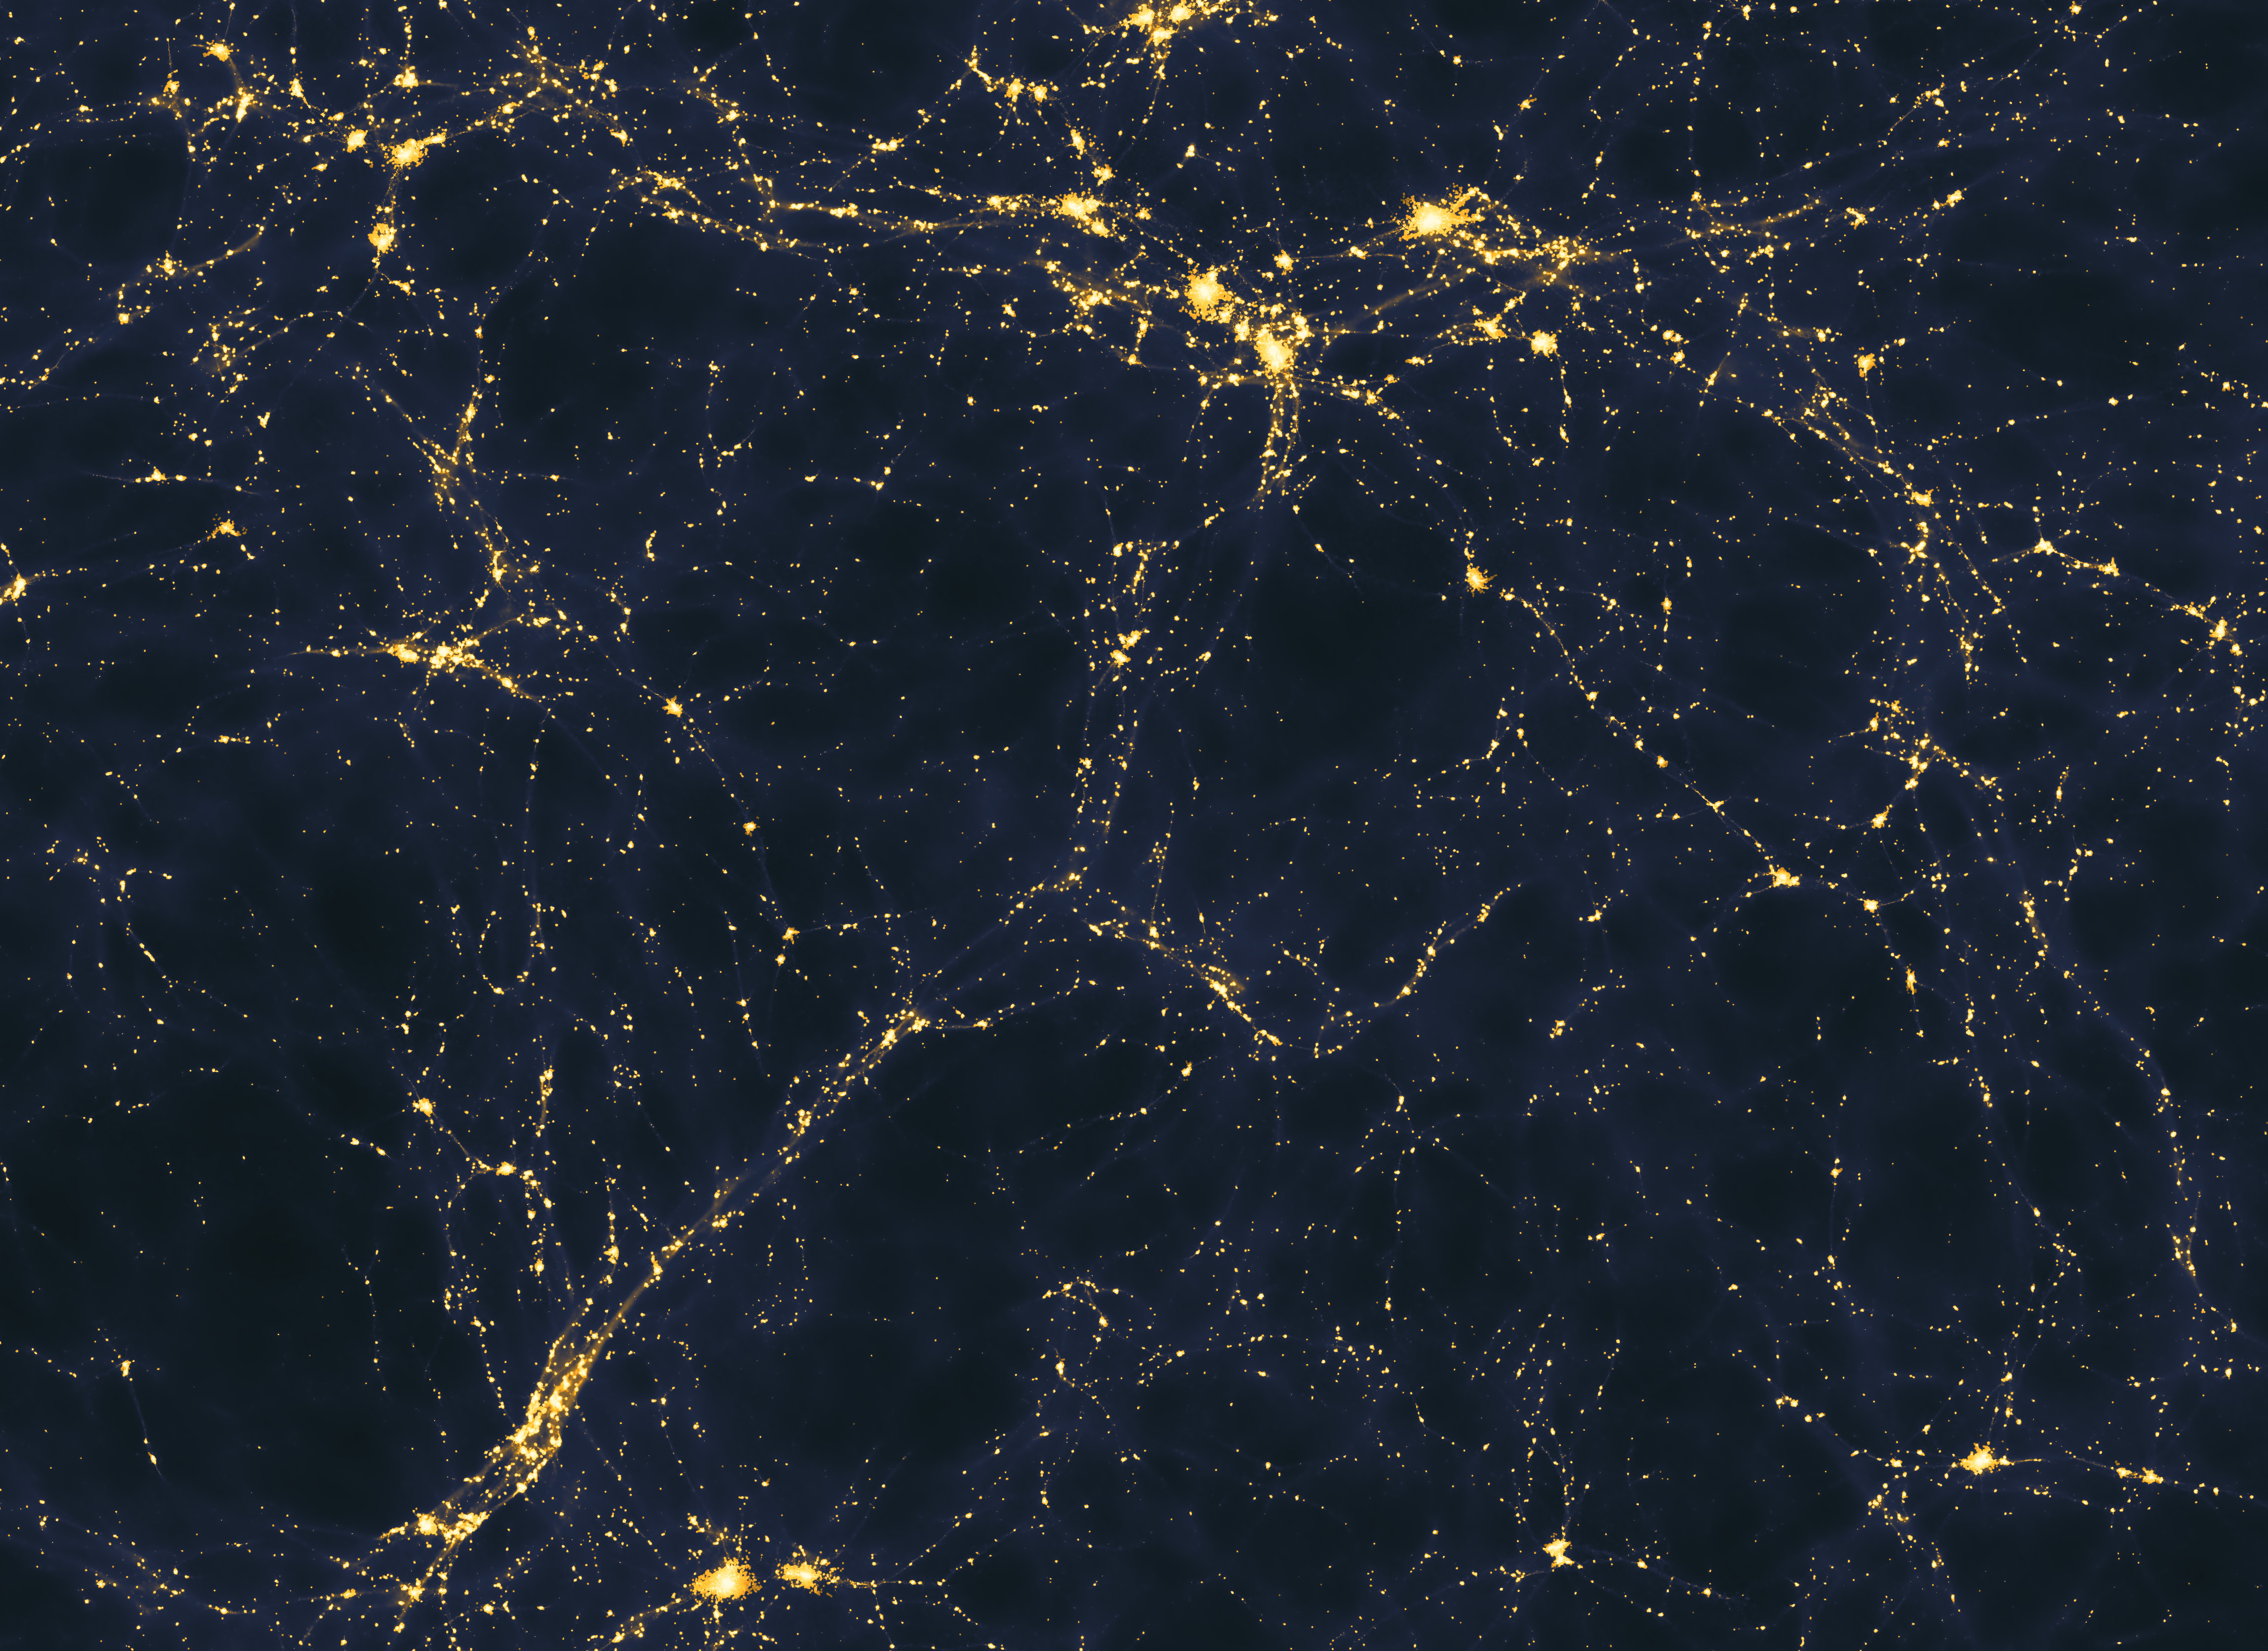 Possible light distribution in the universe